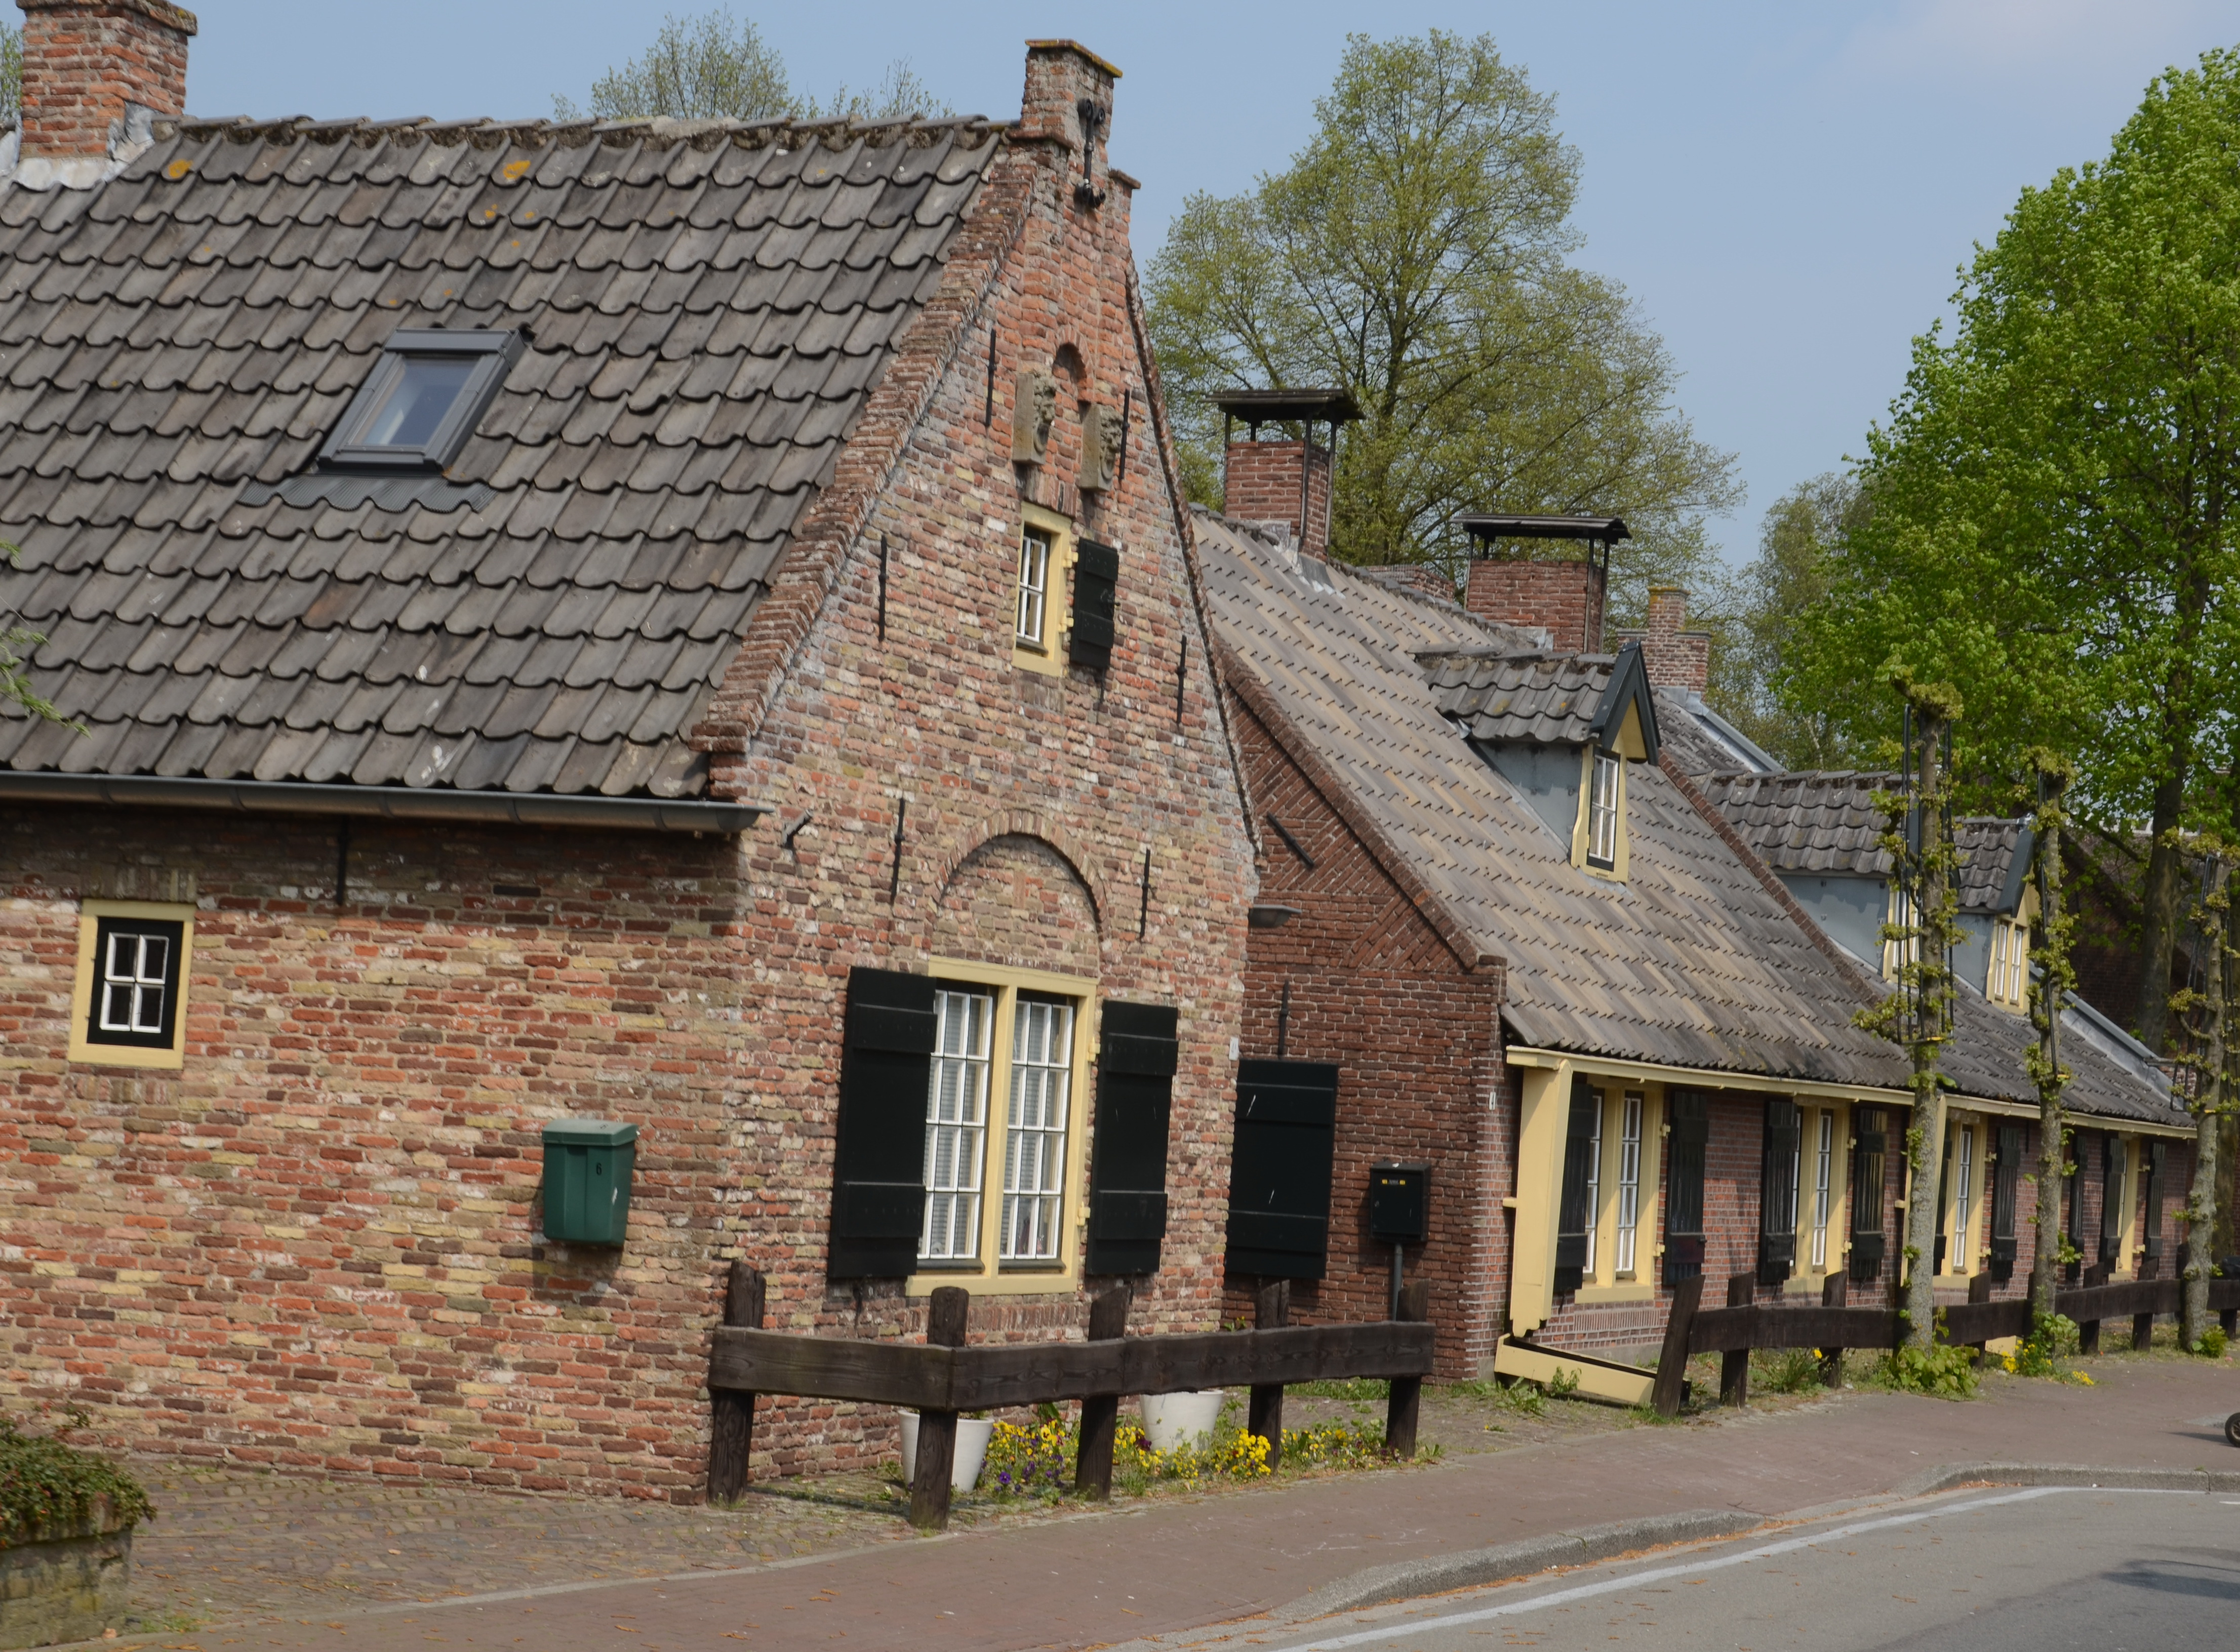 File Characteristic Old Dutch Houses At The Center Of Eemnes Makes